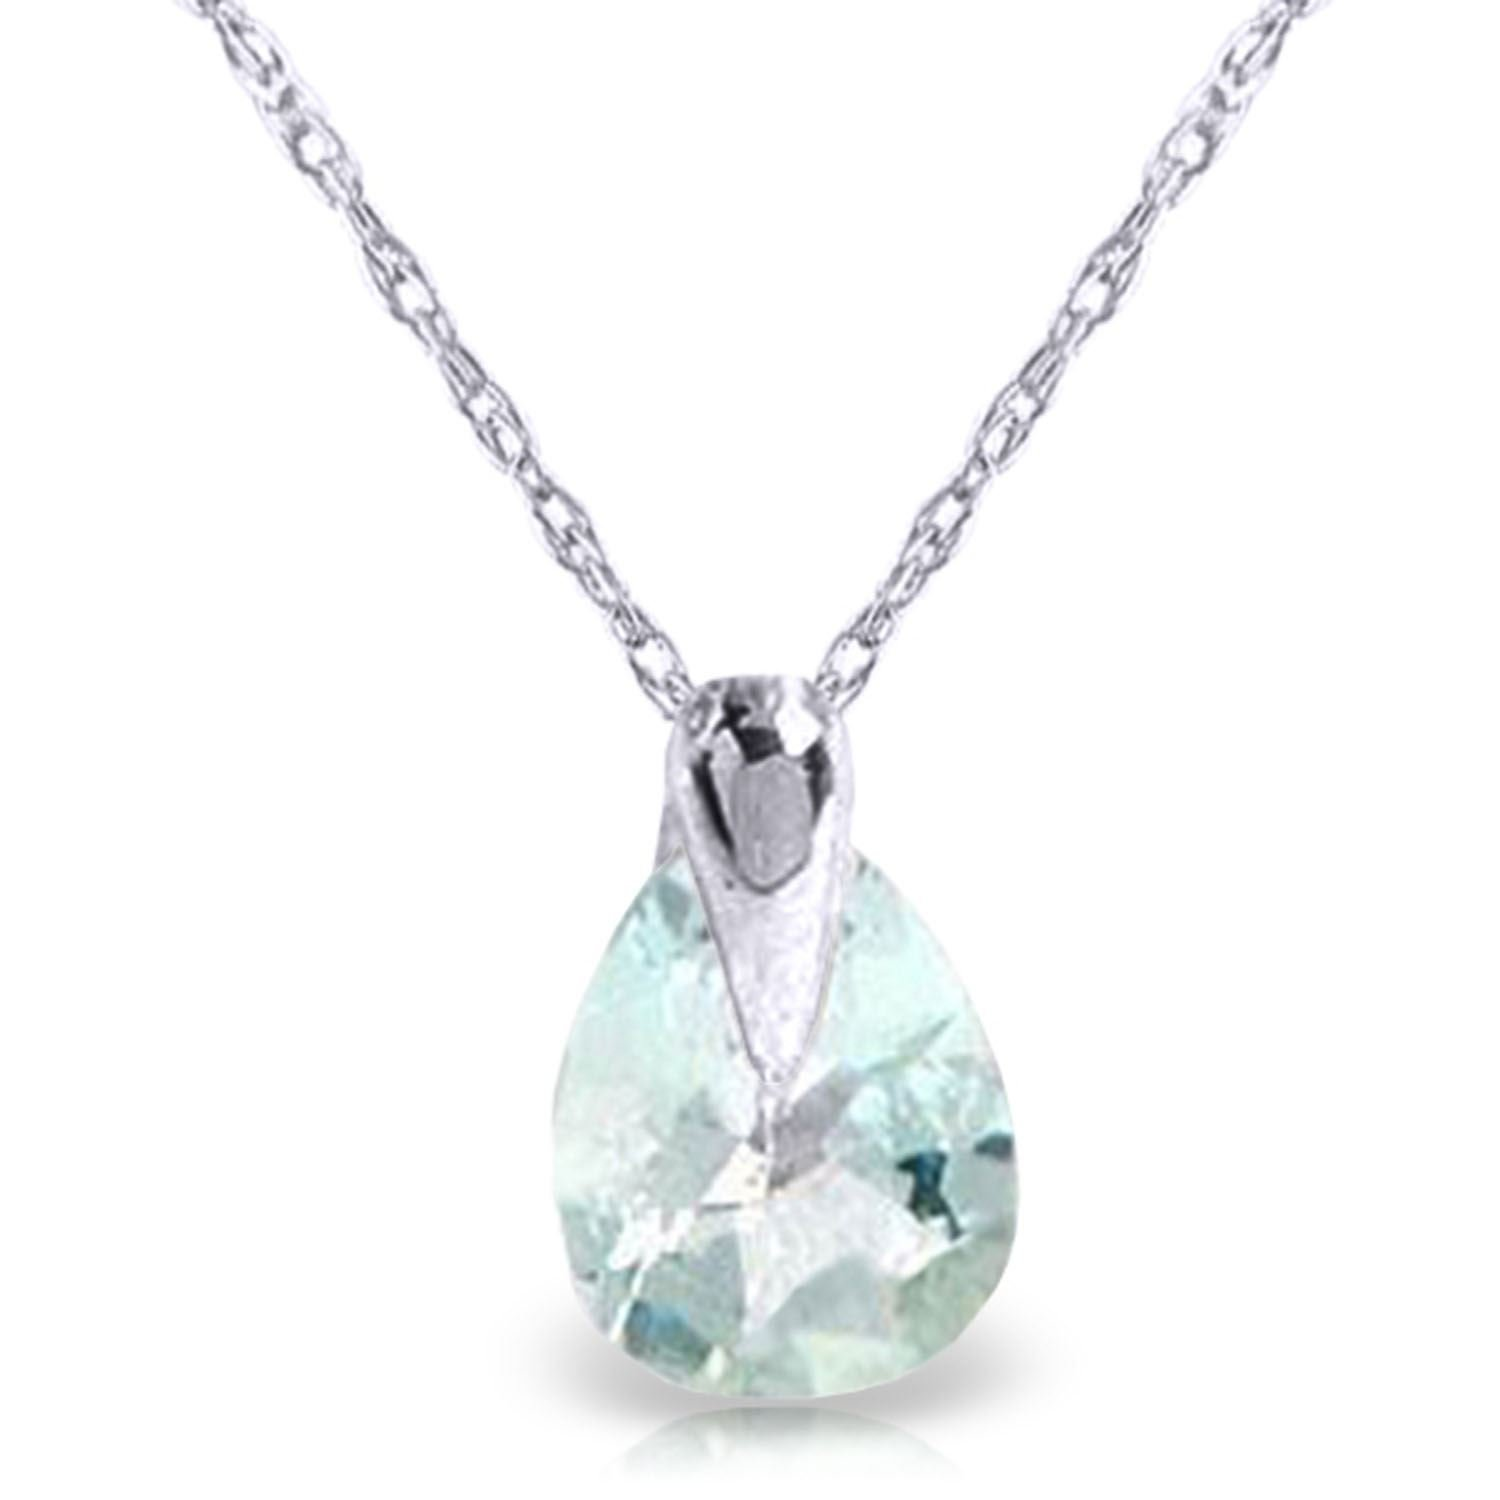 ALARRI 0.68 CTW 14K Solid White Gold Necklace Natural Aquamarine with 22 Inch Chain Length